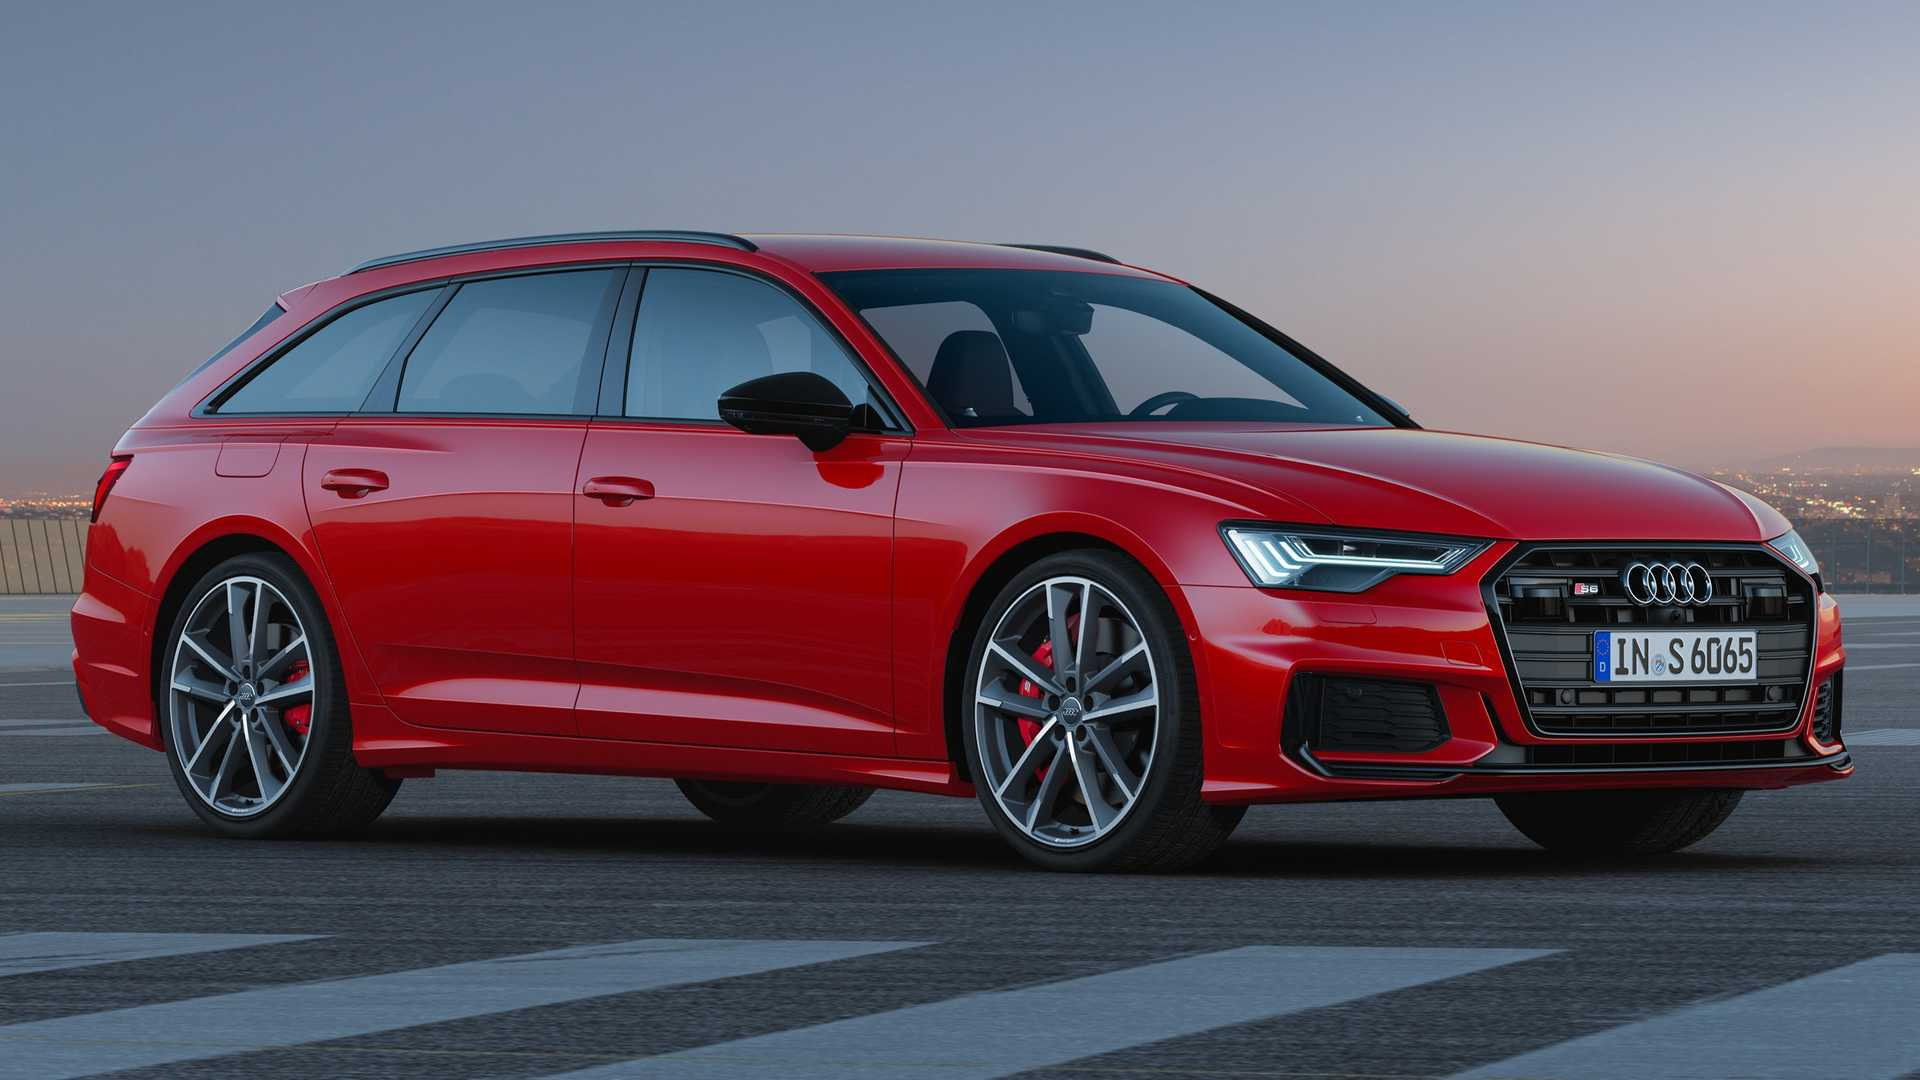 12 New Audi Tdi 2020 Concept And Review